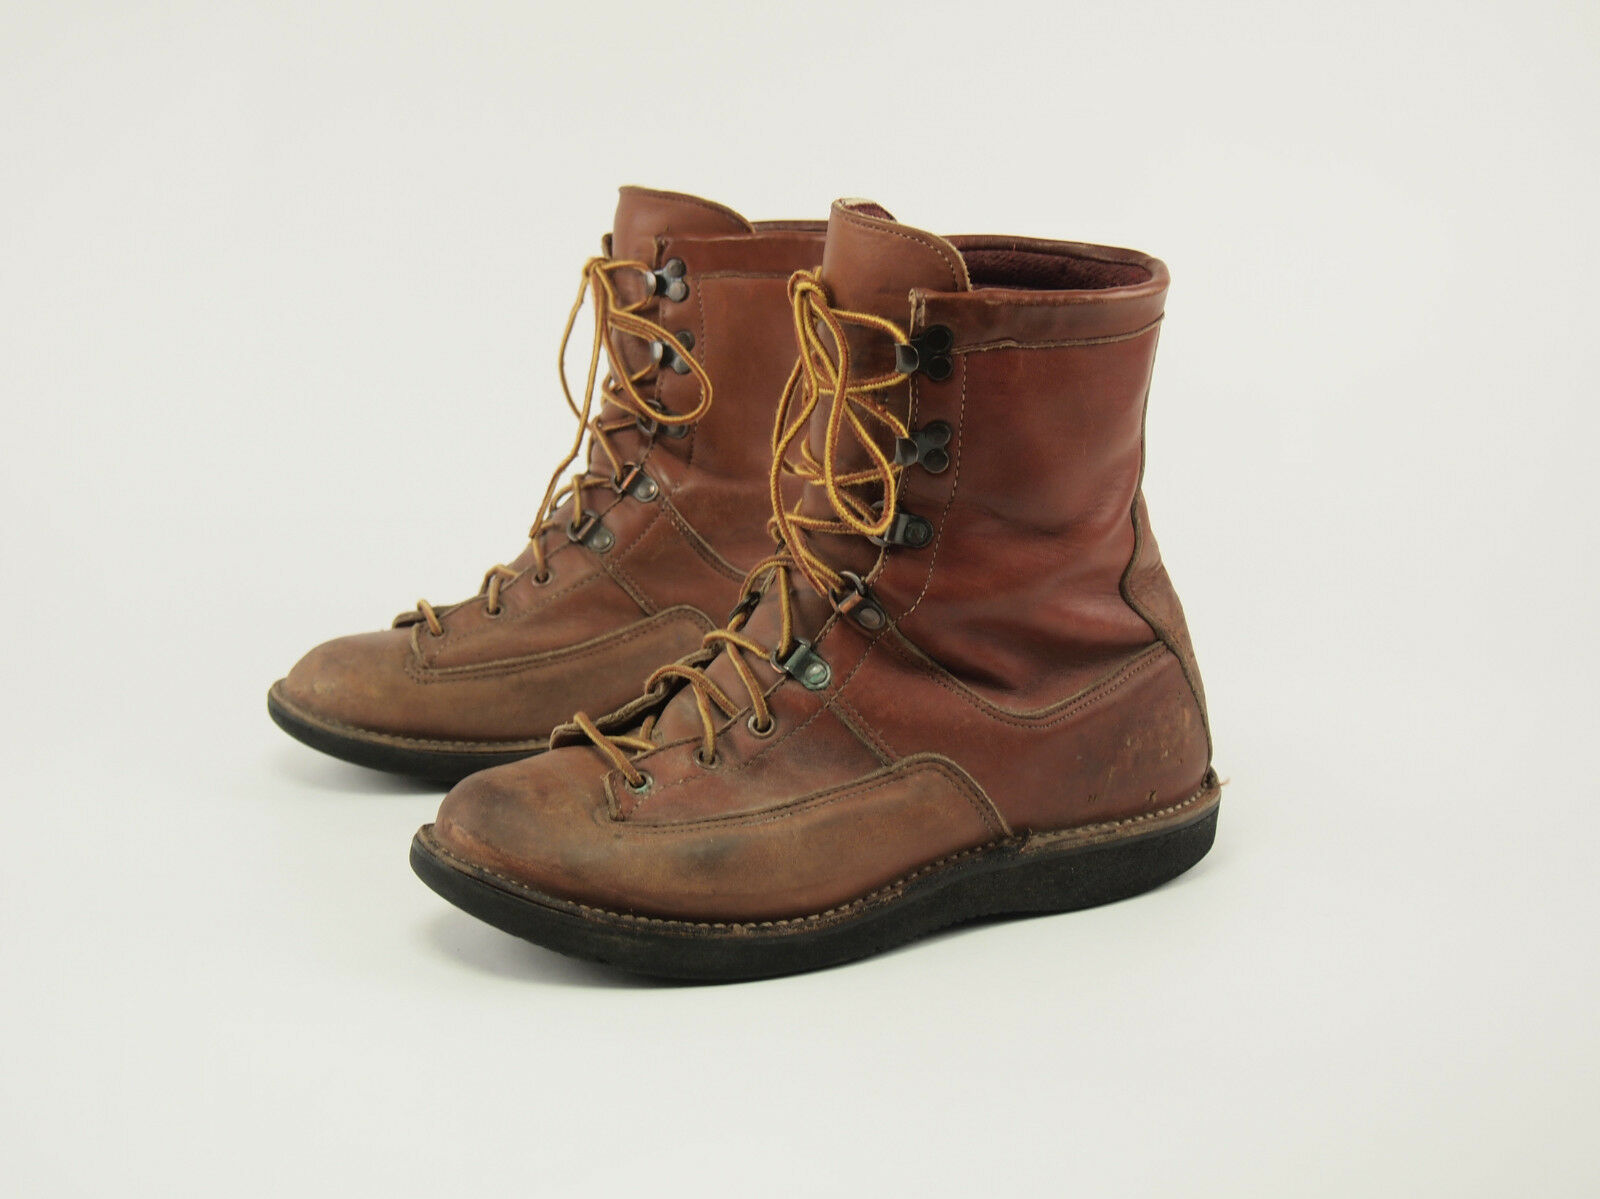 1980s DANNER Vintage 6032 Leather GTX Lace-to-toe Hunting Boots 7.5